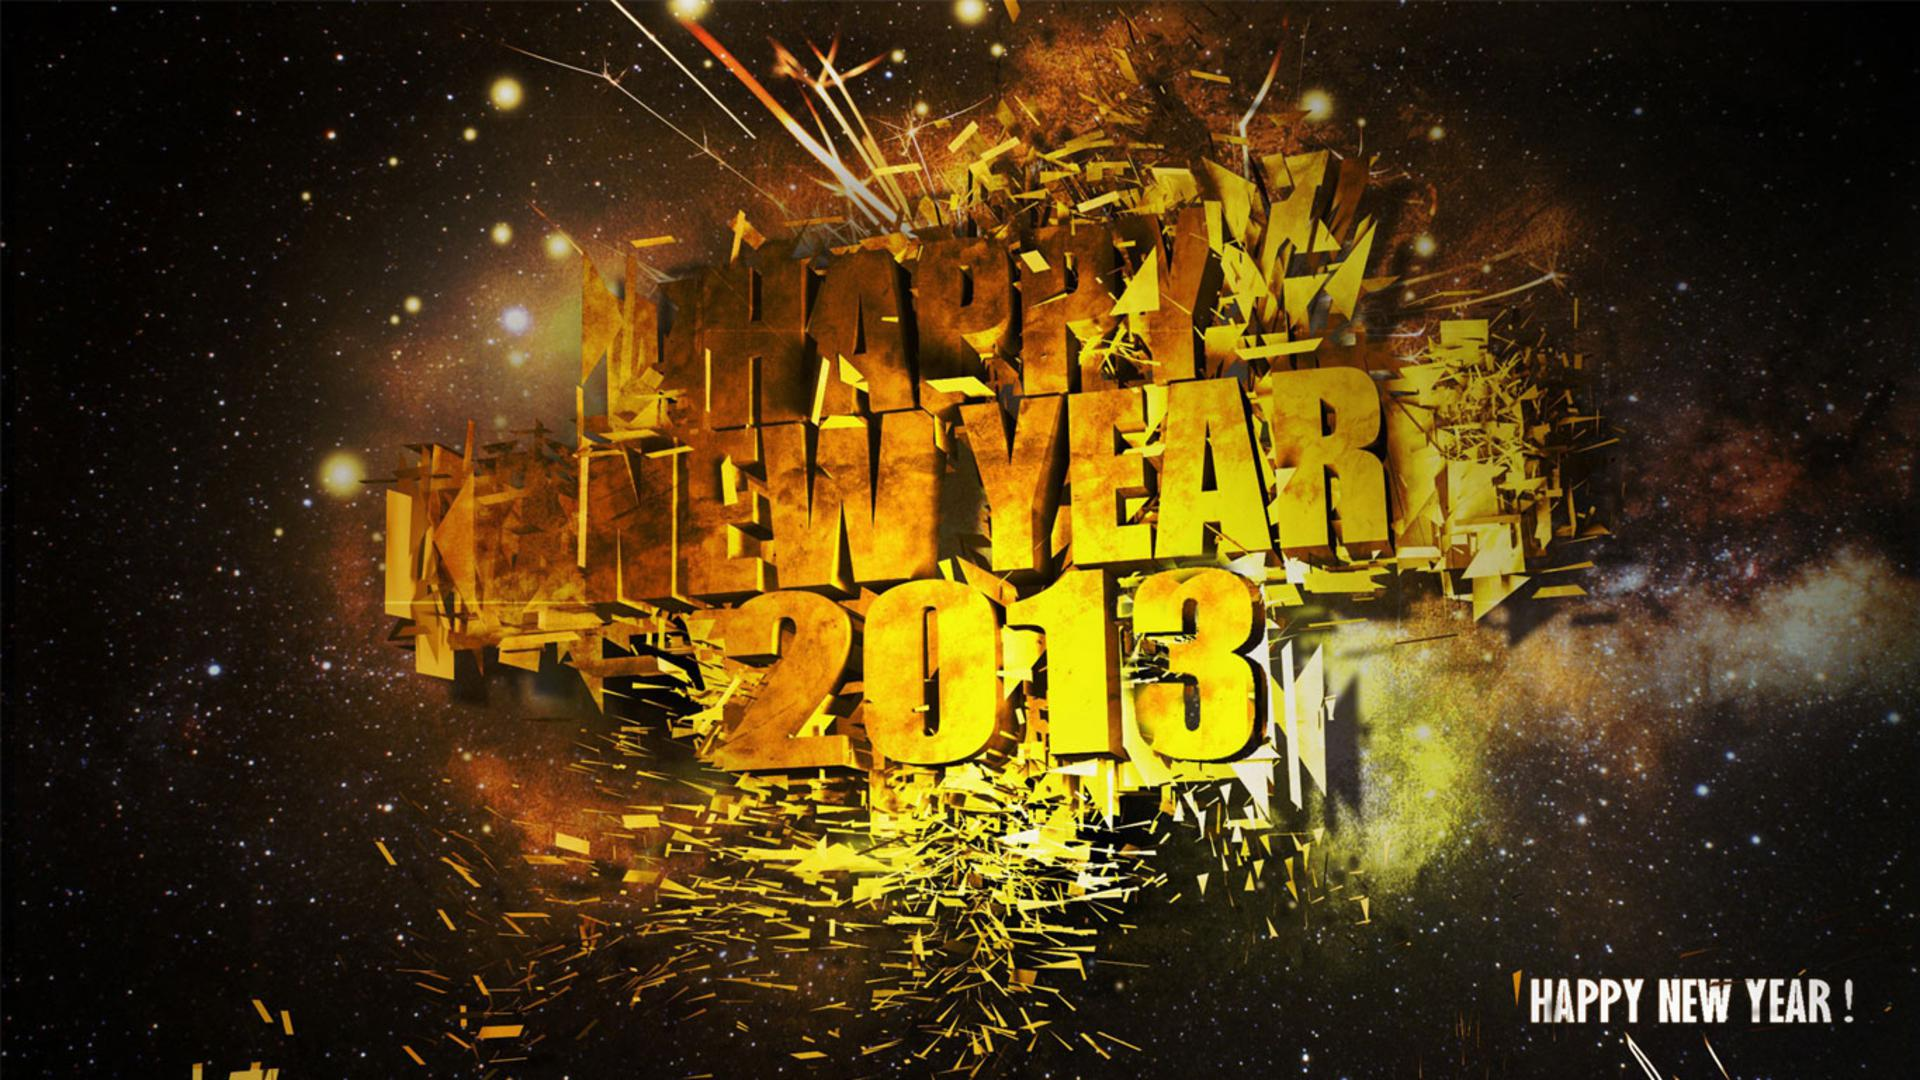 Happy New Year Stock Images RoyaltyFree Images Vectors